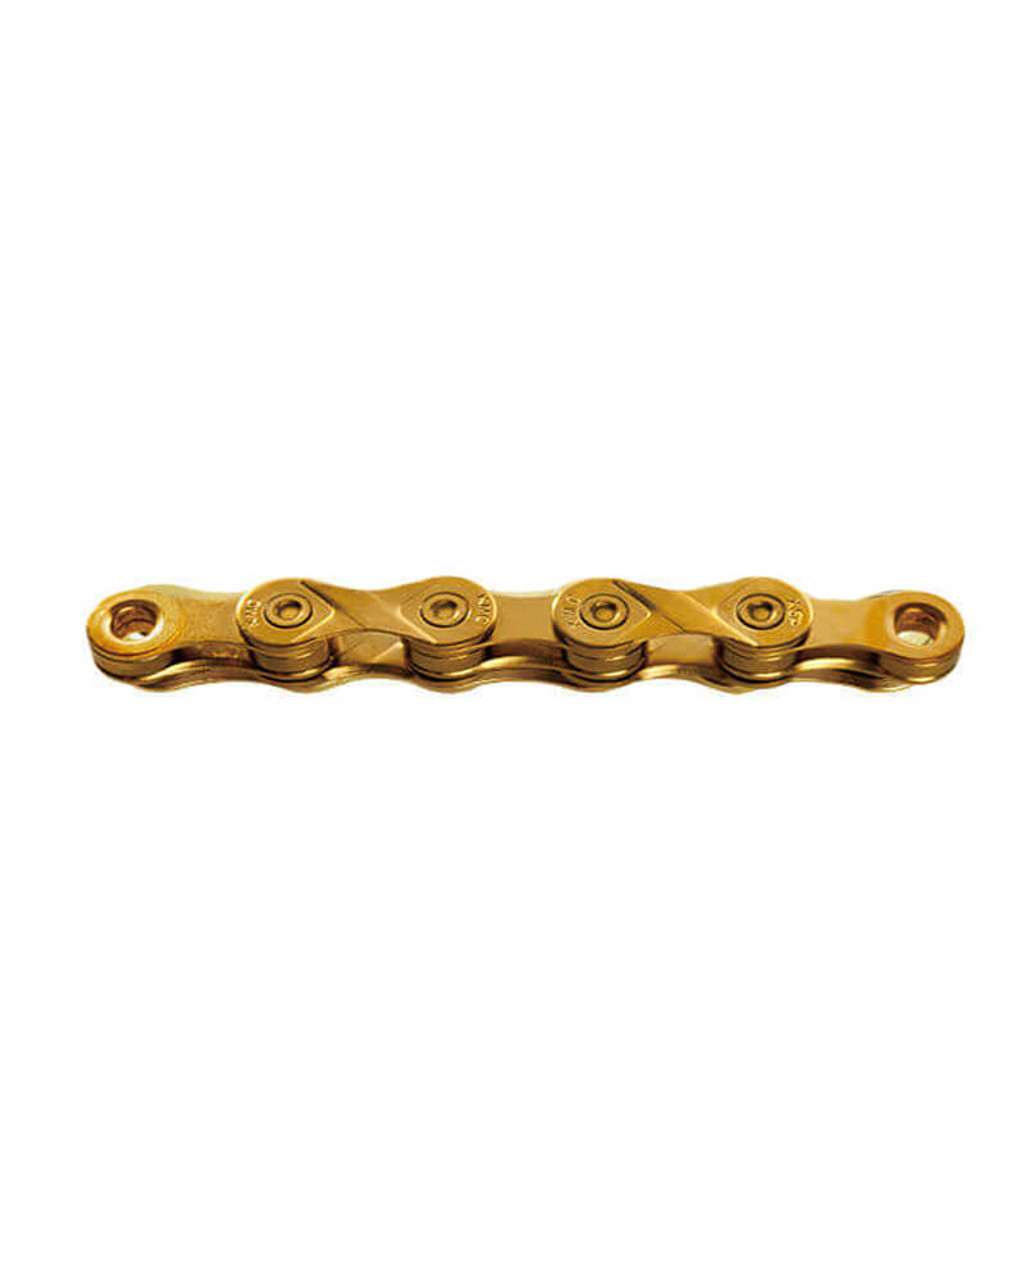 Silver KMC X11 SL X11SL Chain,118 link with Missing Link